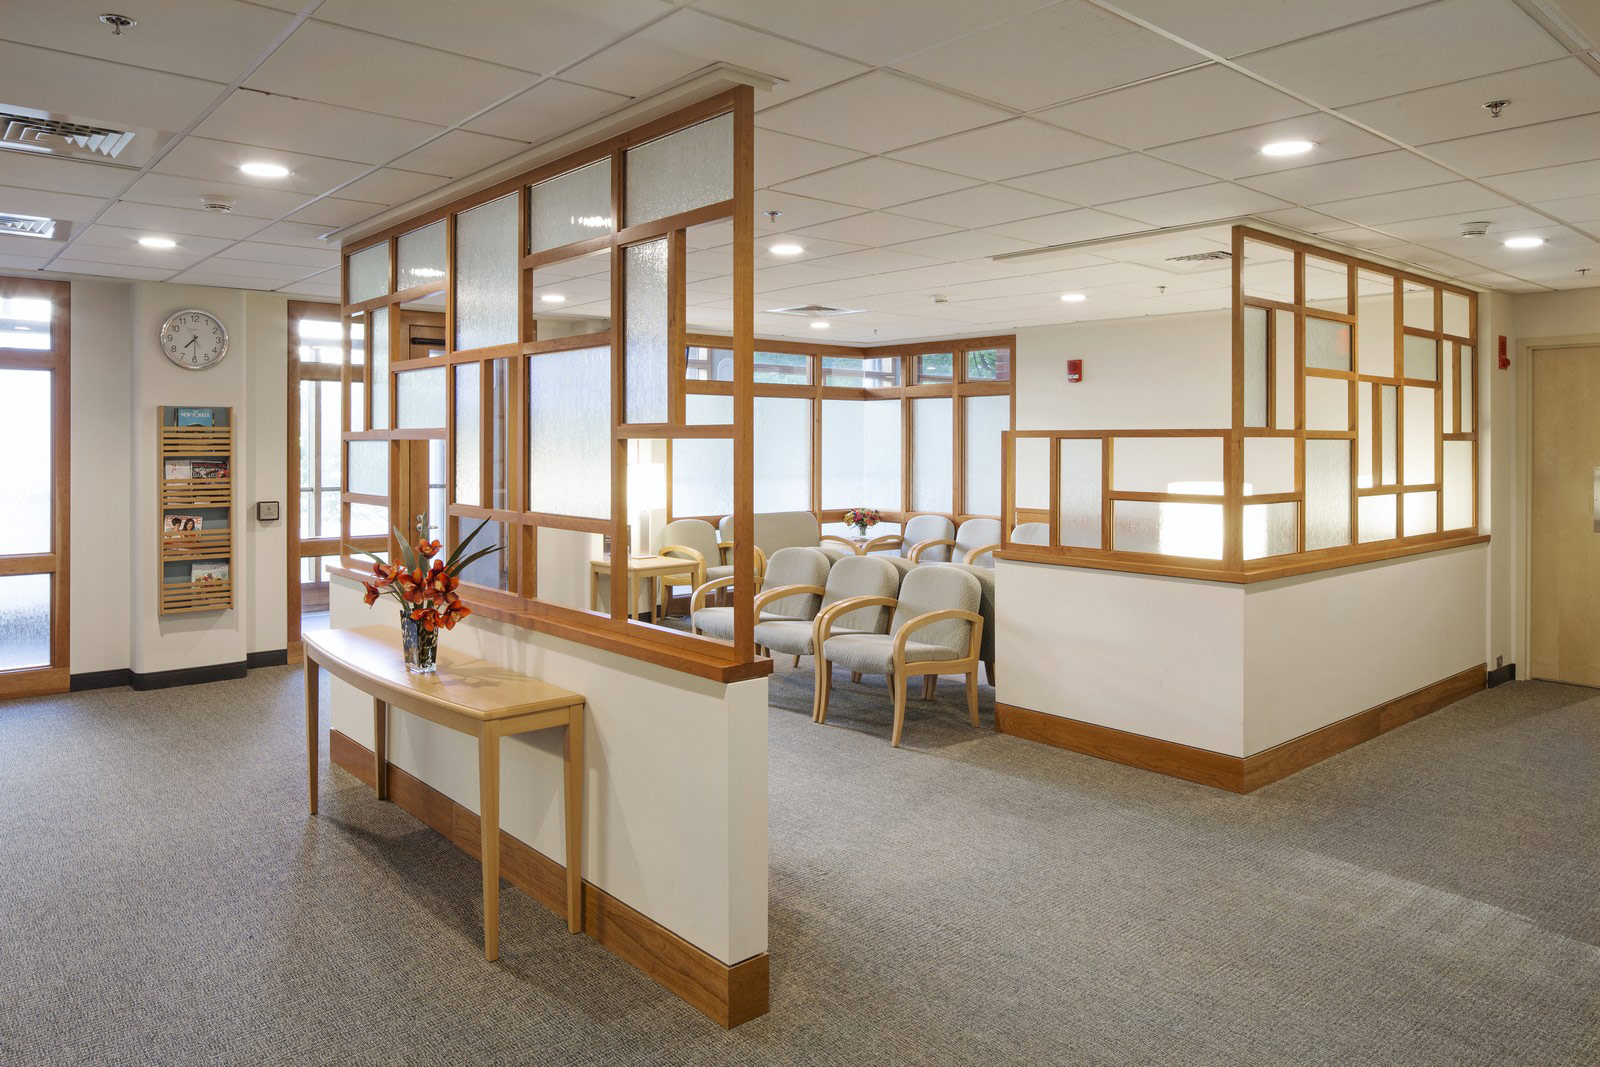 MIT Medical Master Plan and Renovations